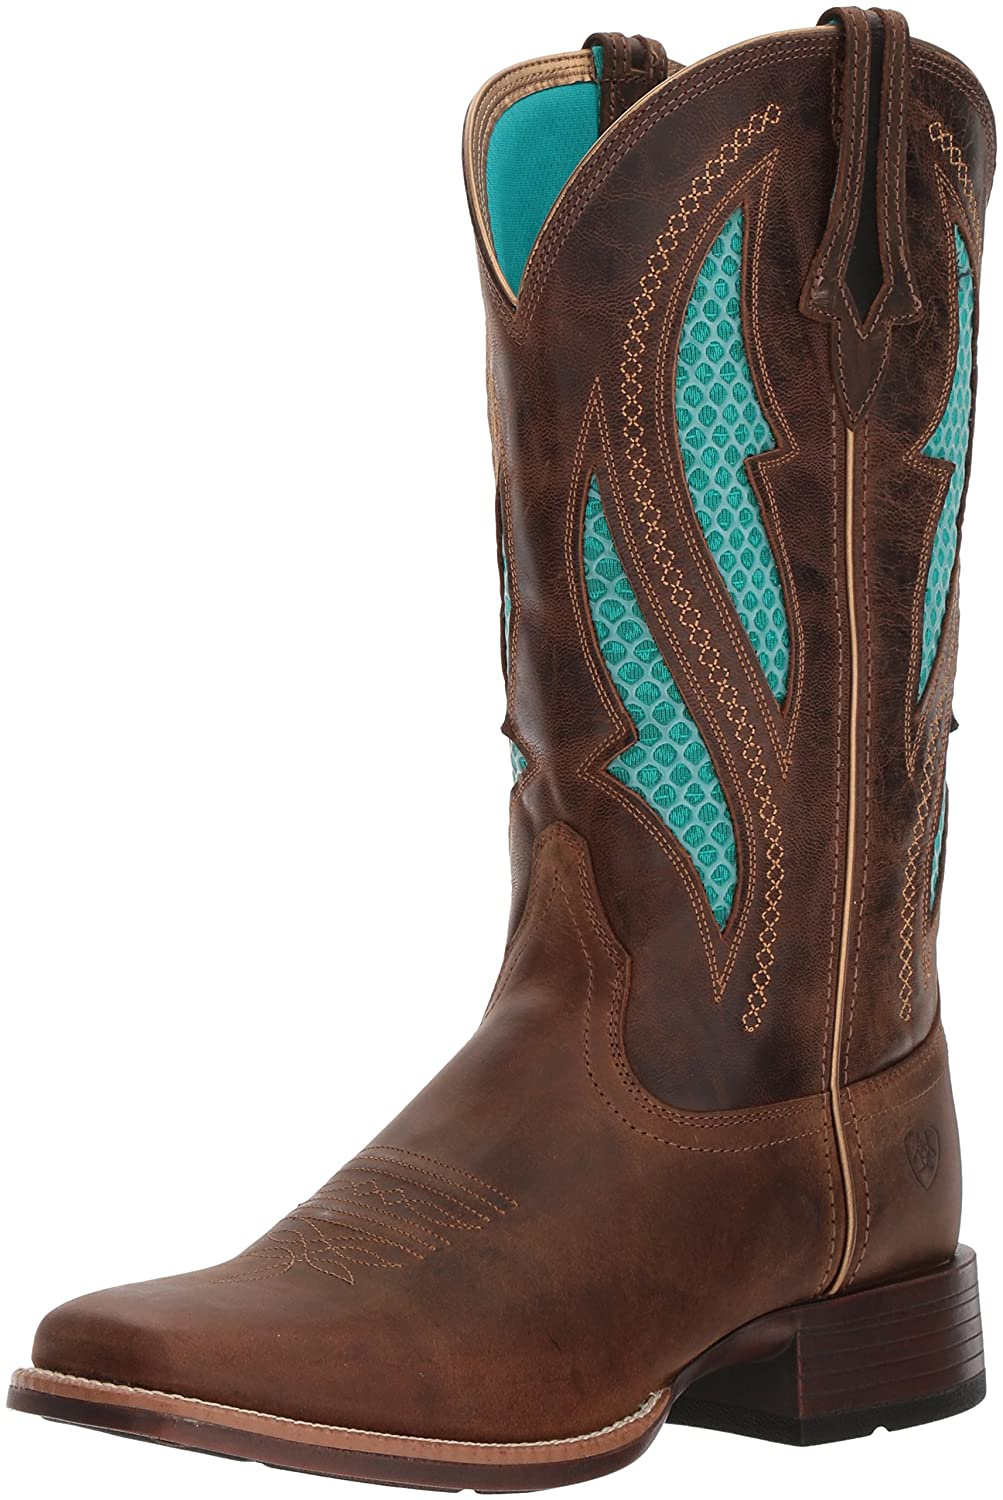 Ariat Women's Venttek Ultra Western Boot B076MDRL8Y 7.5 M US|Distressed Brown/Silly Brown